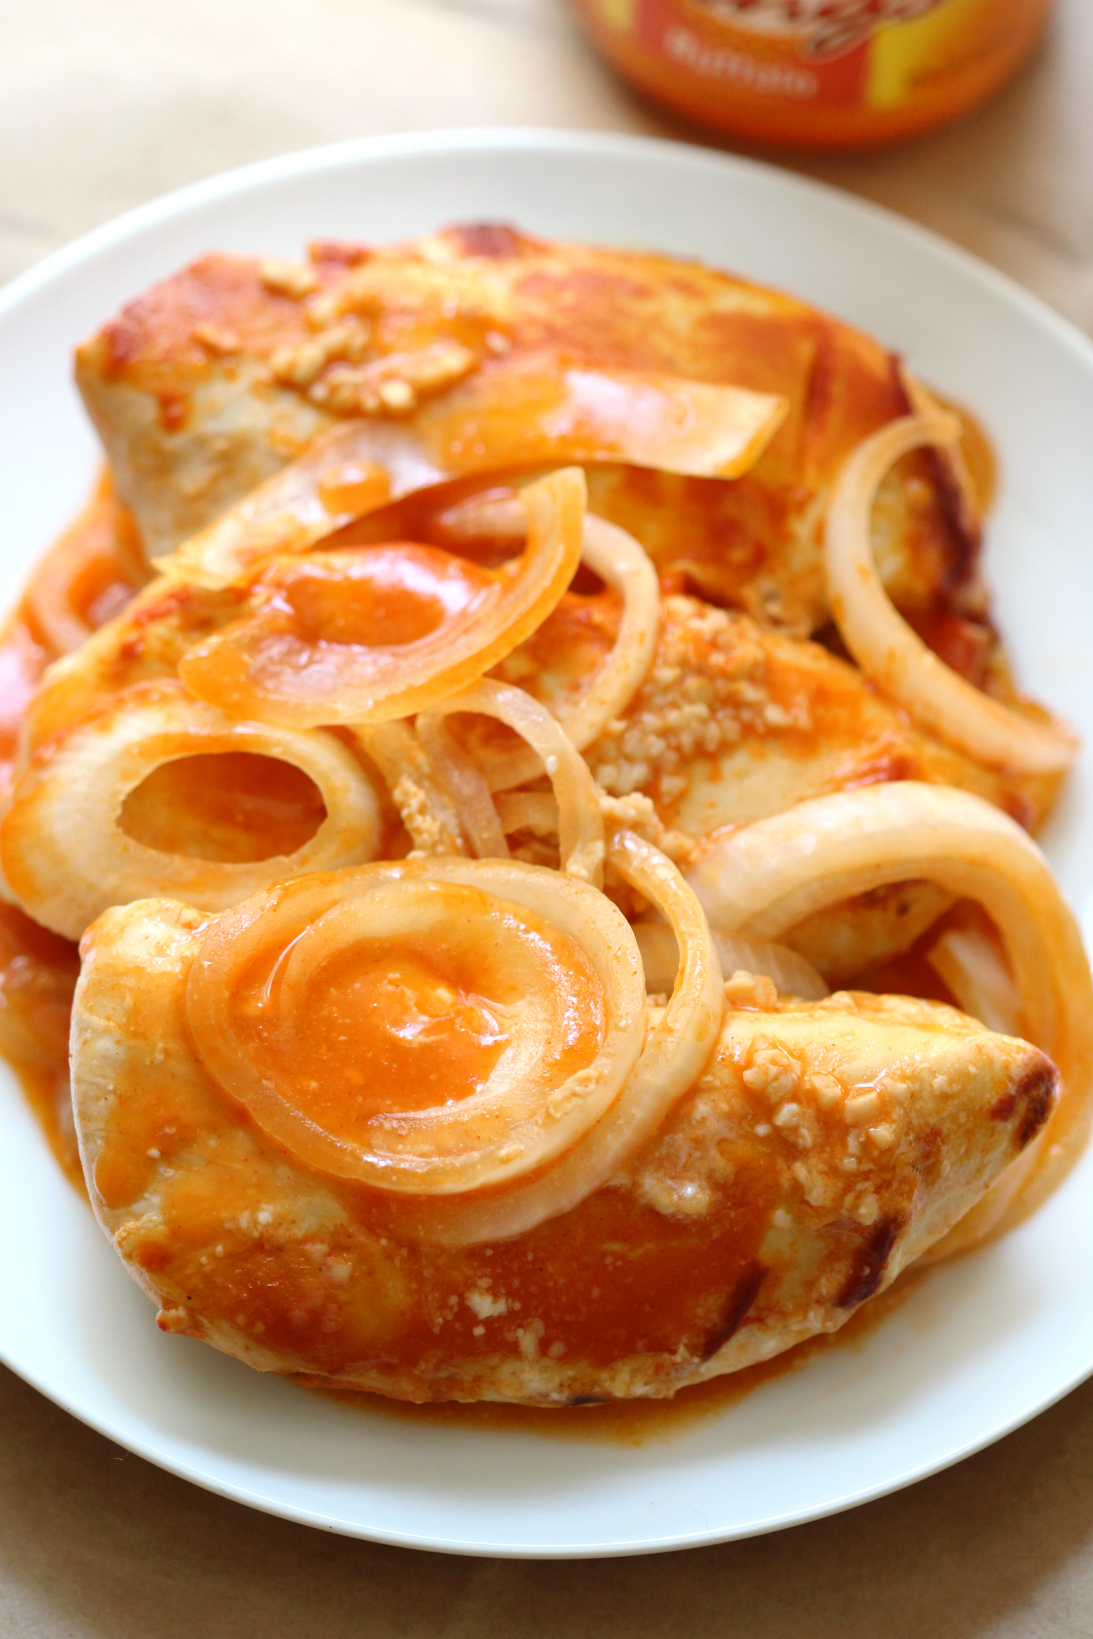 Slow Cooker Buffalo Chicken | Strength and Sunshine @RebeccaGF666 Grab your slow cooker, it's time for a hot and spicy meal! Thrown together in seconds, but full of flavor, gluten-free, dairy-free, paleo, and with a secret to the creaminess; slow cooker buffalo chicken is the perfect weeknight dinner recipe!